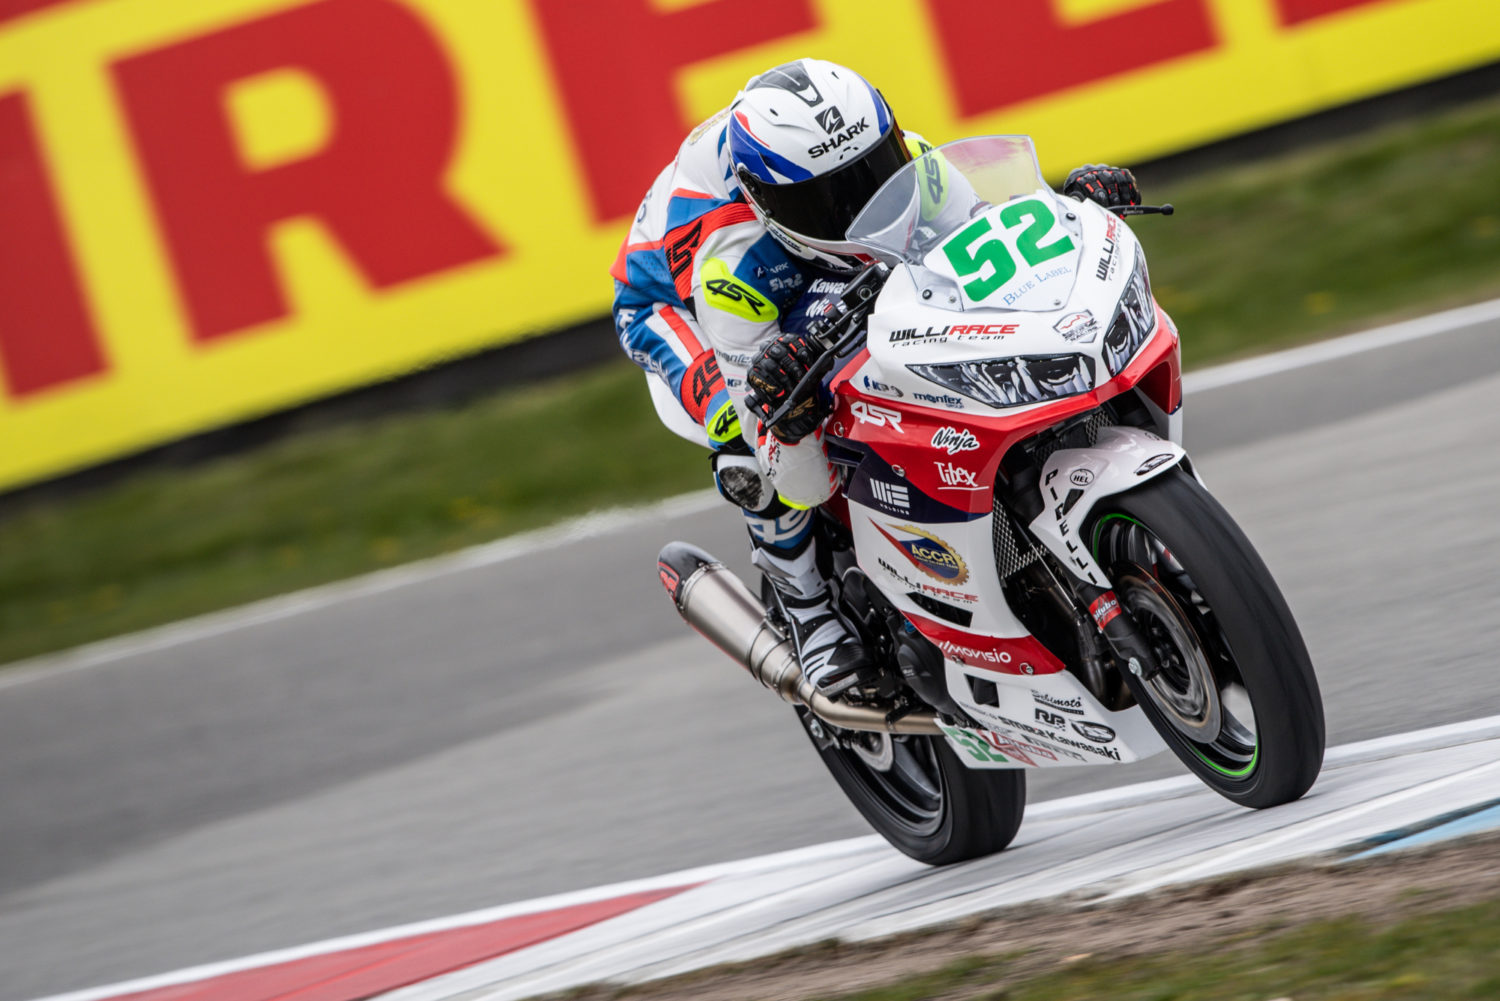 ACCR Czech Talent Team – Willi Race: Studený pátek v Assenu